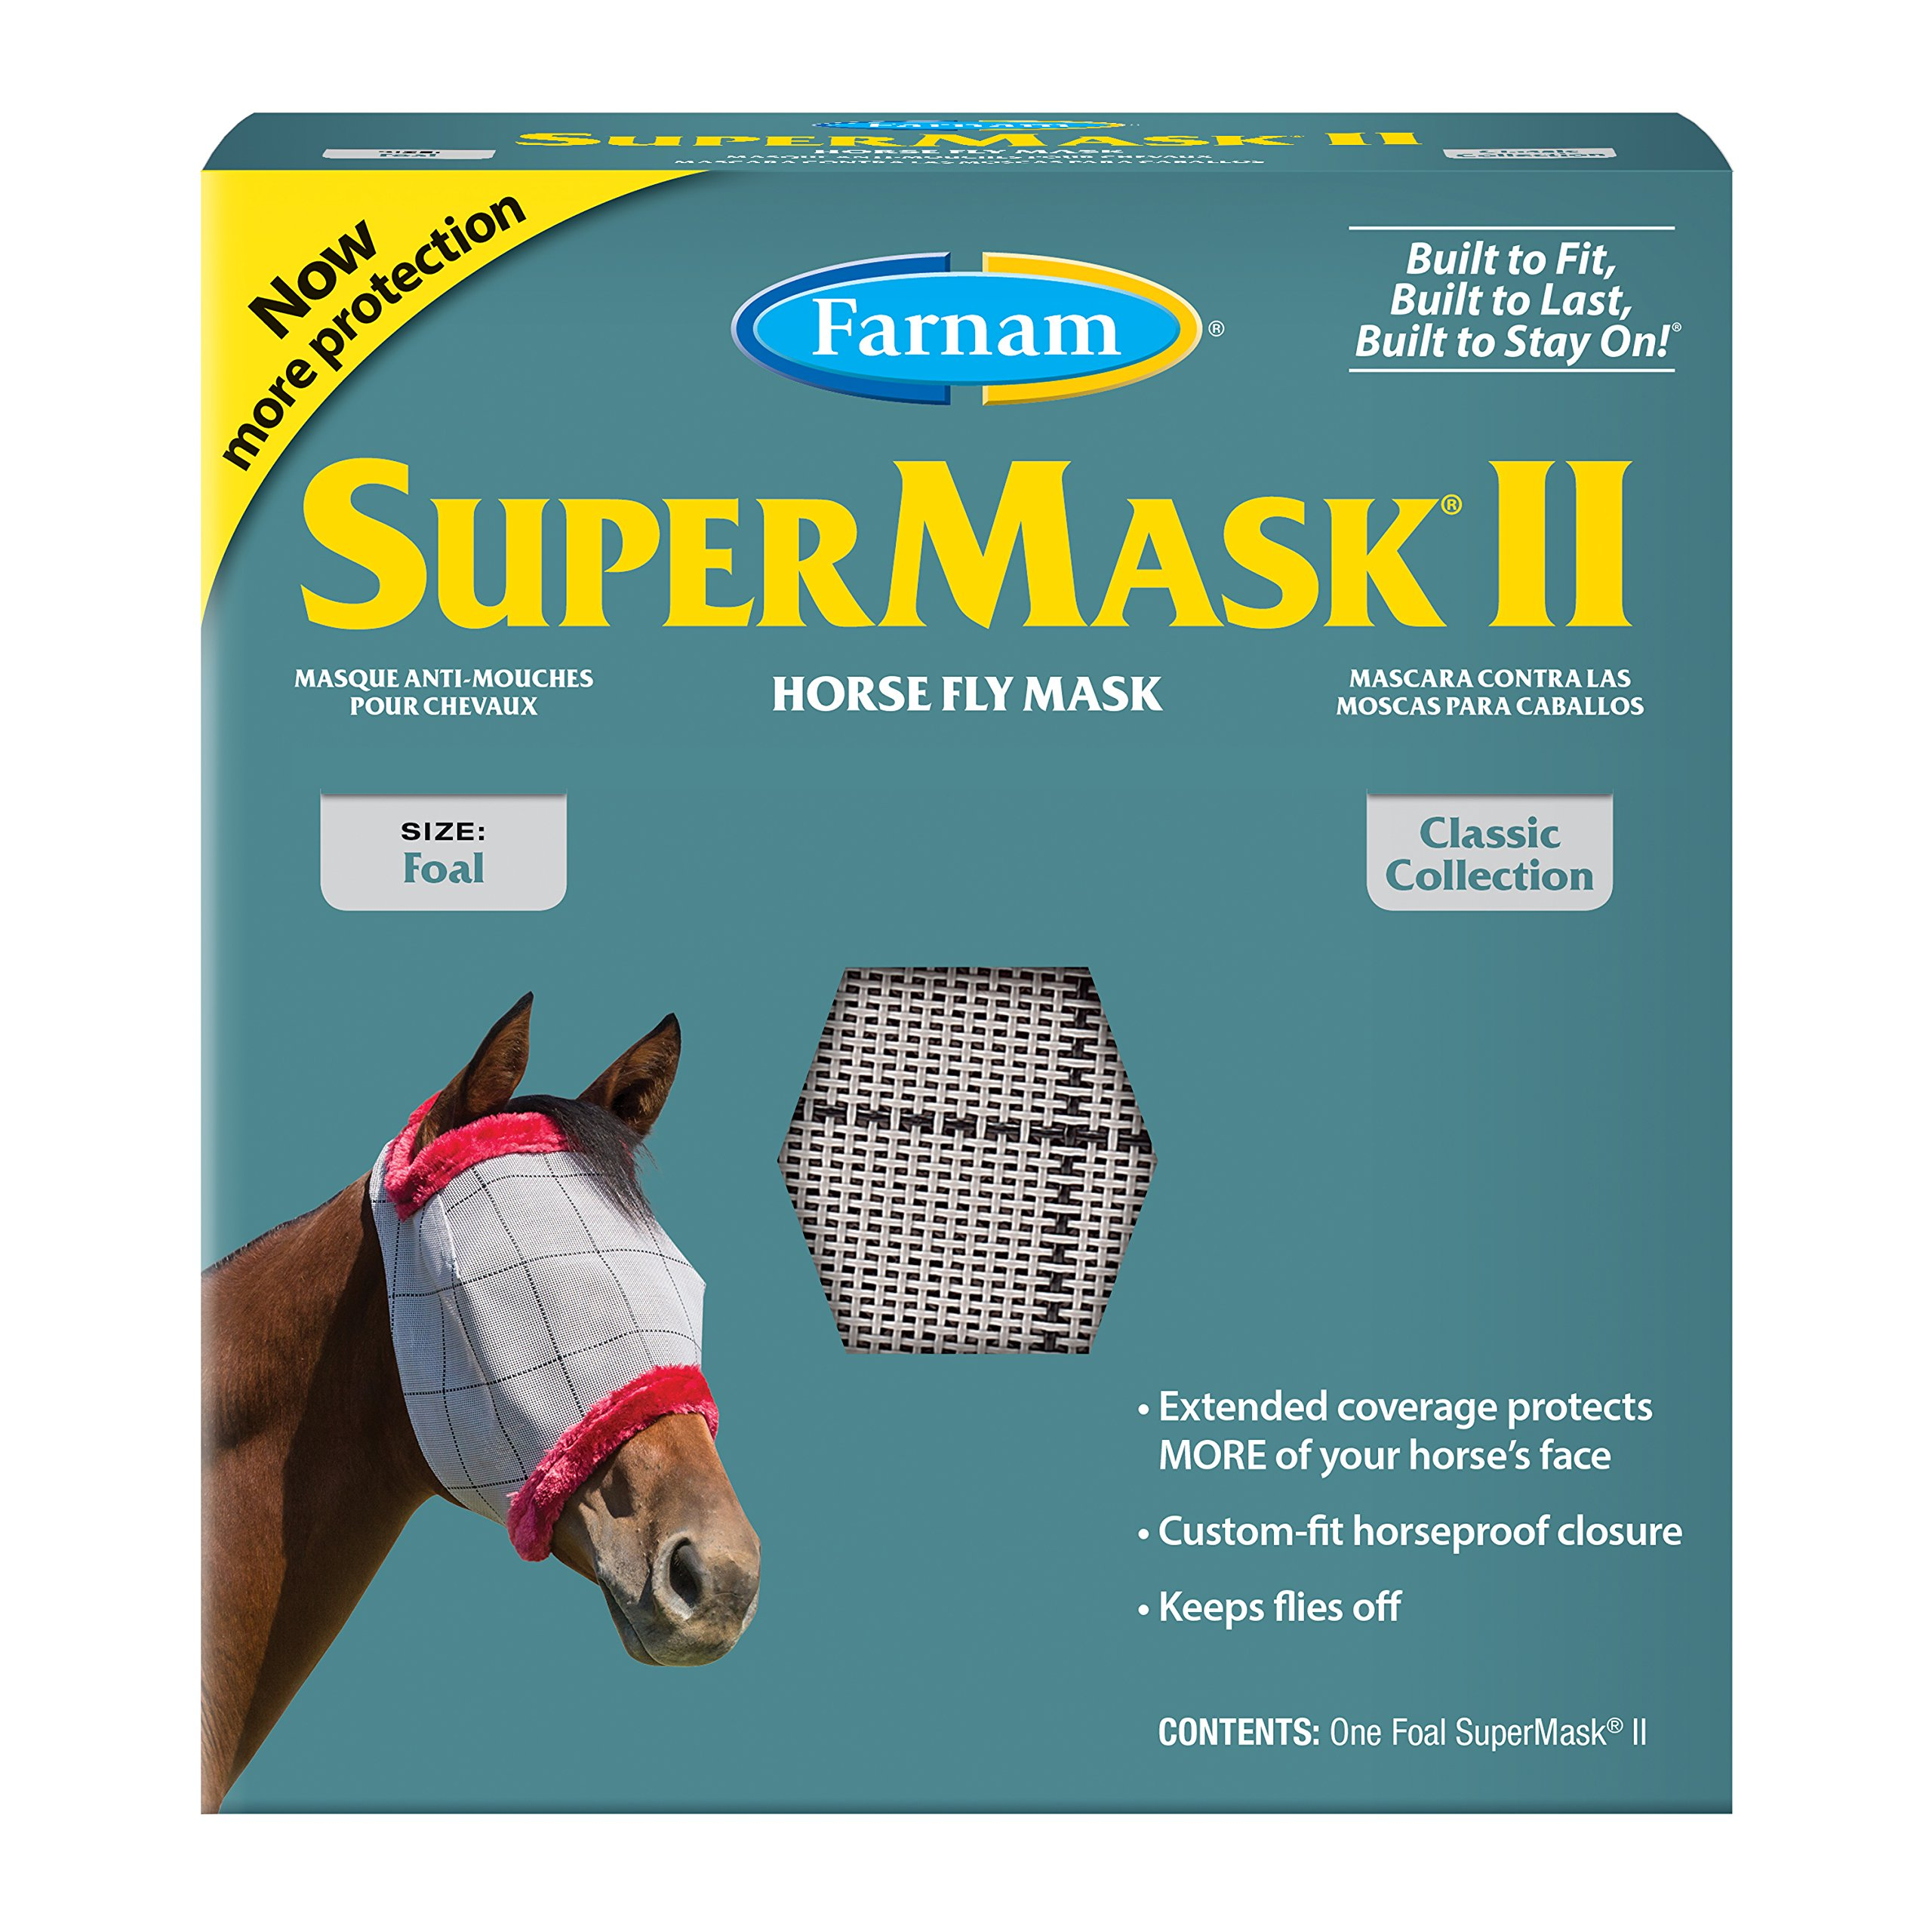 Farnam SuperMask Classic Horse Fly Mask, Foal size, Assorted